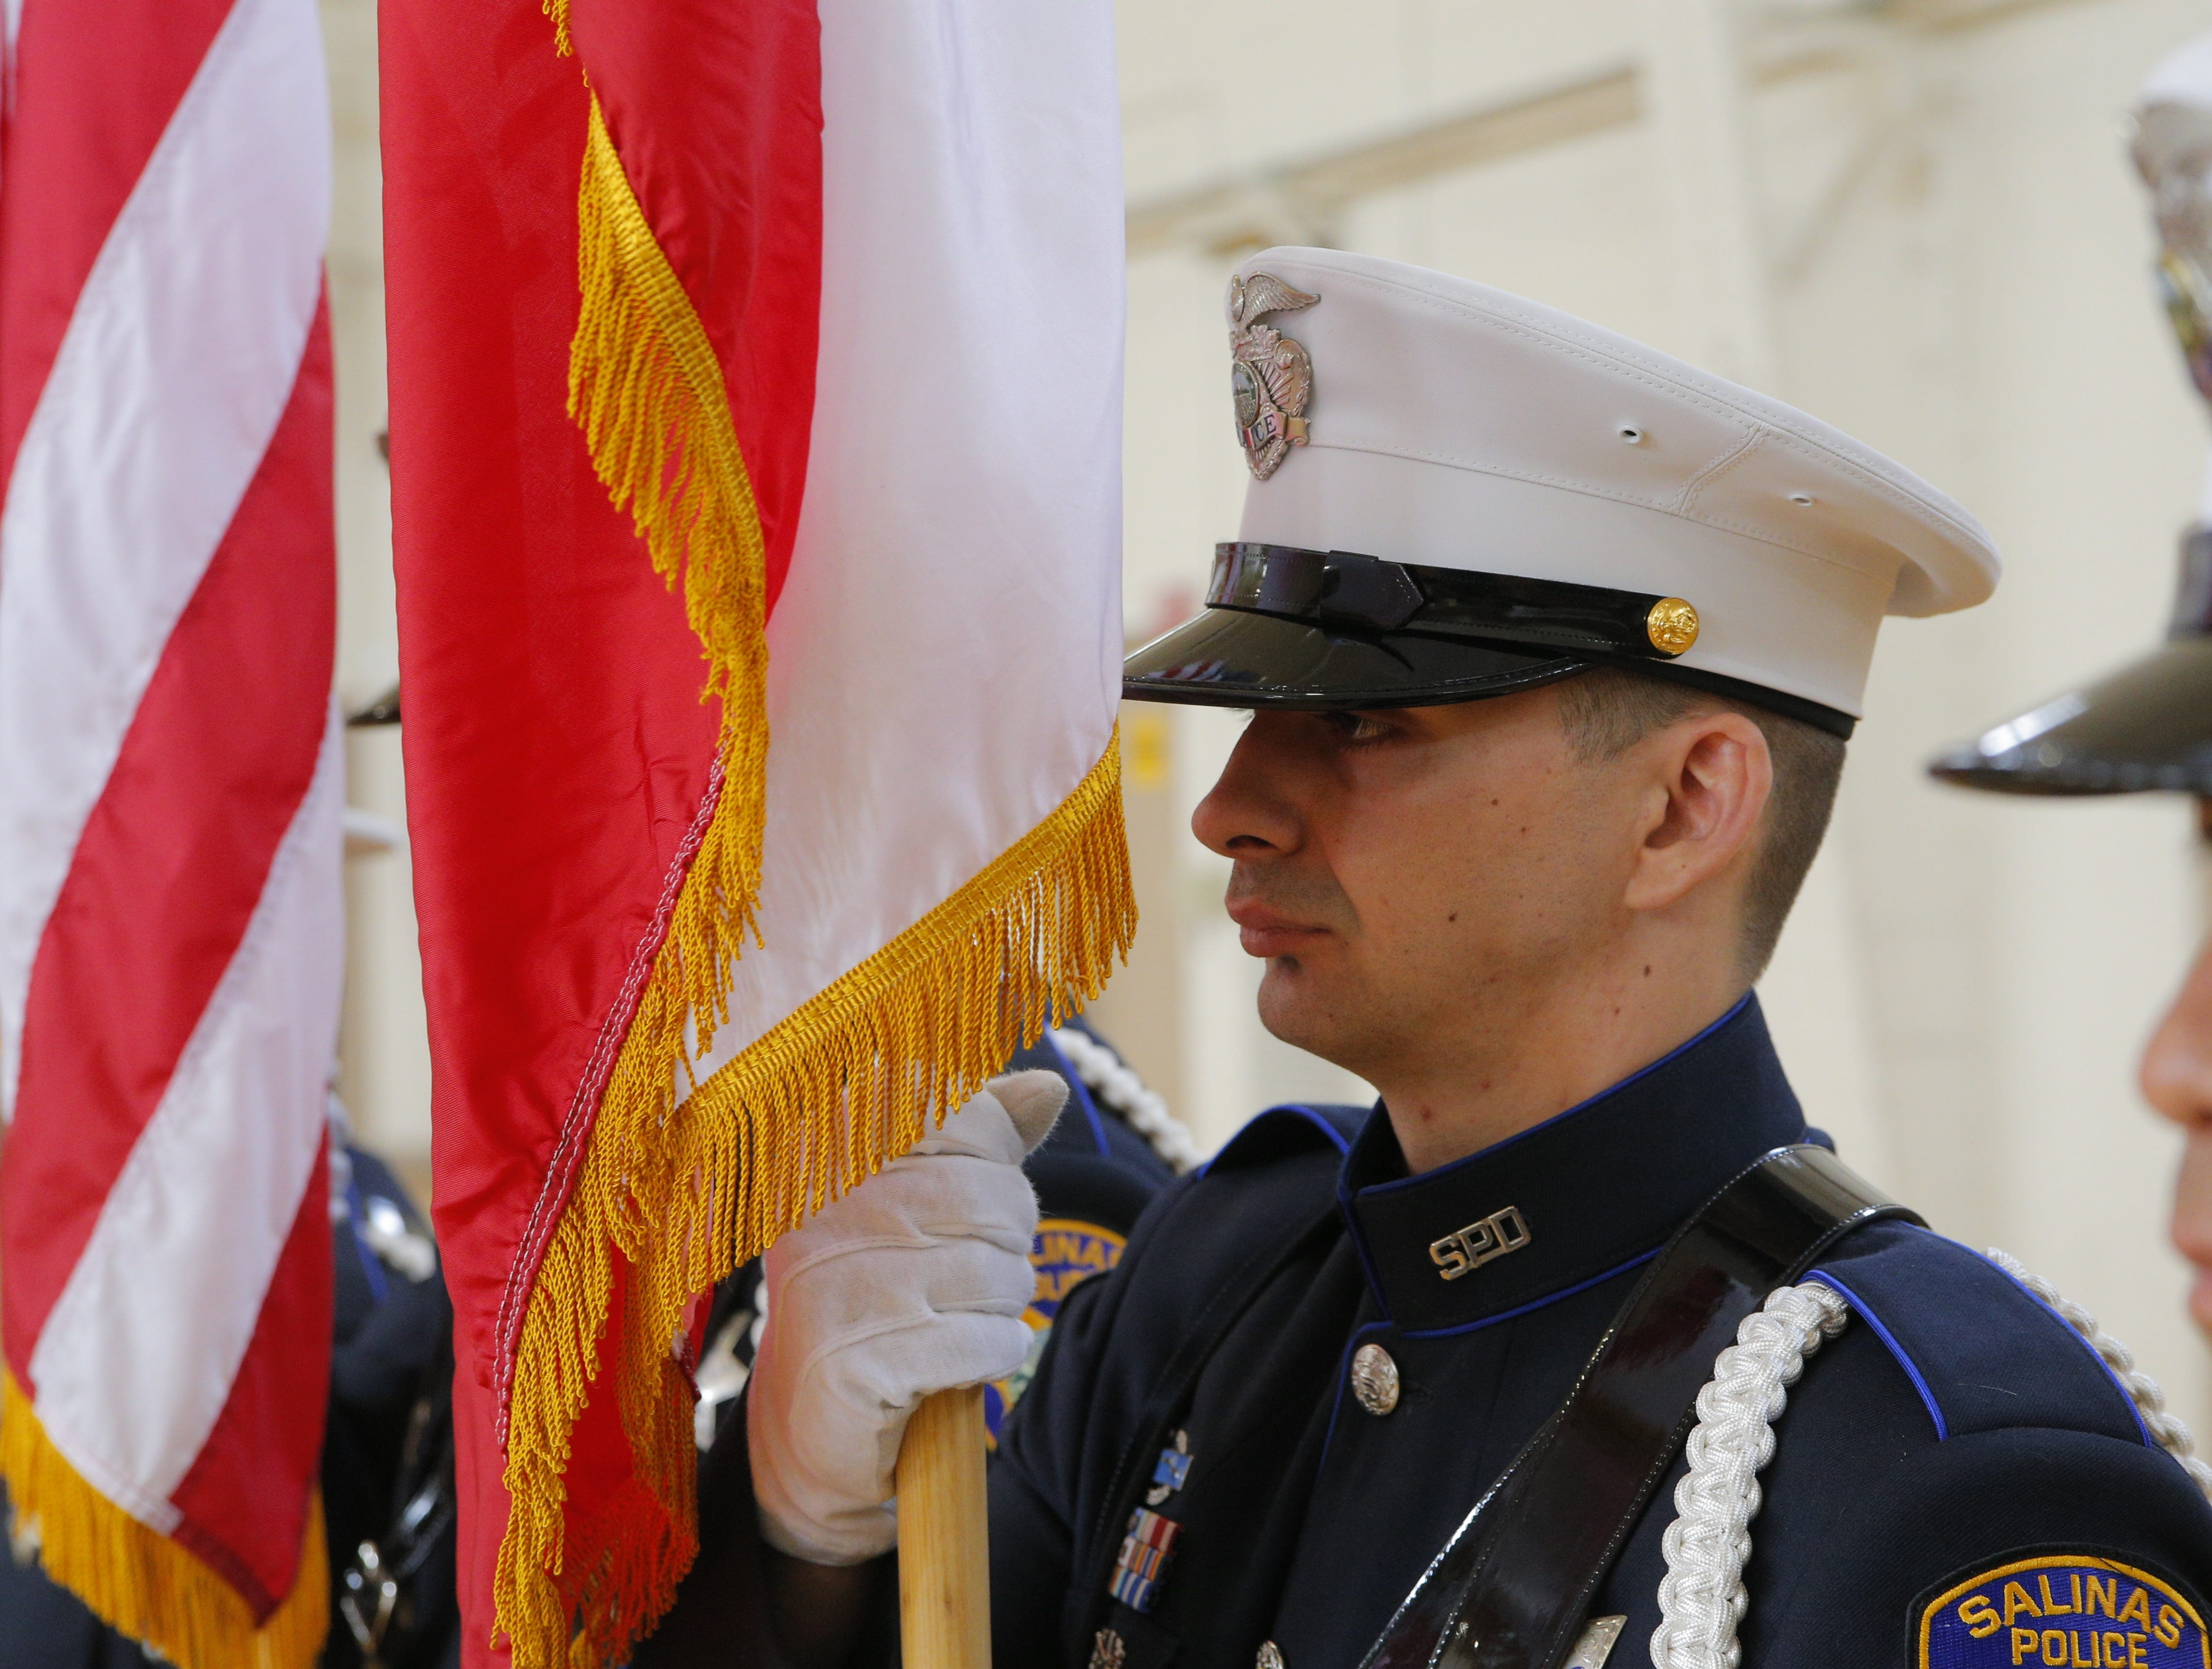 Salinas police officer and member of the color guard Clifton Smith prepares to present the flag Cmdr. Henry Gomez's retirement ceremony.